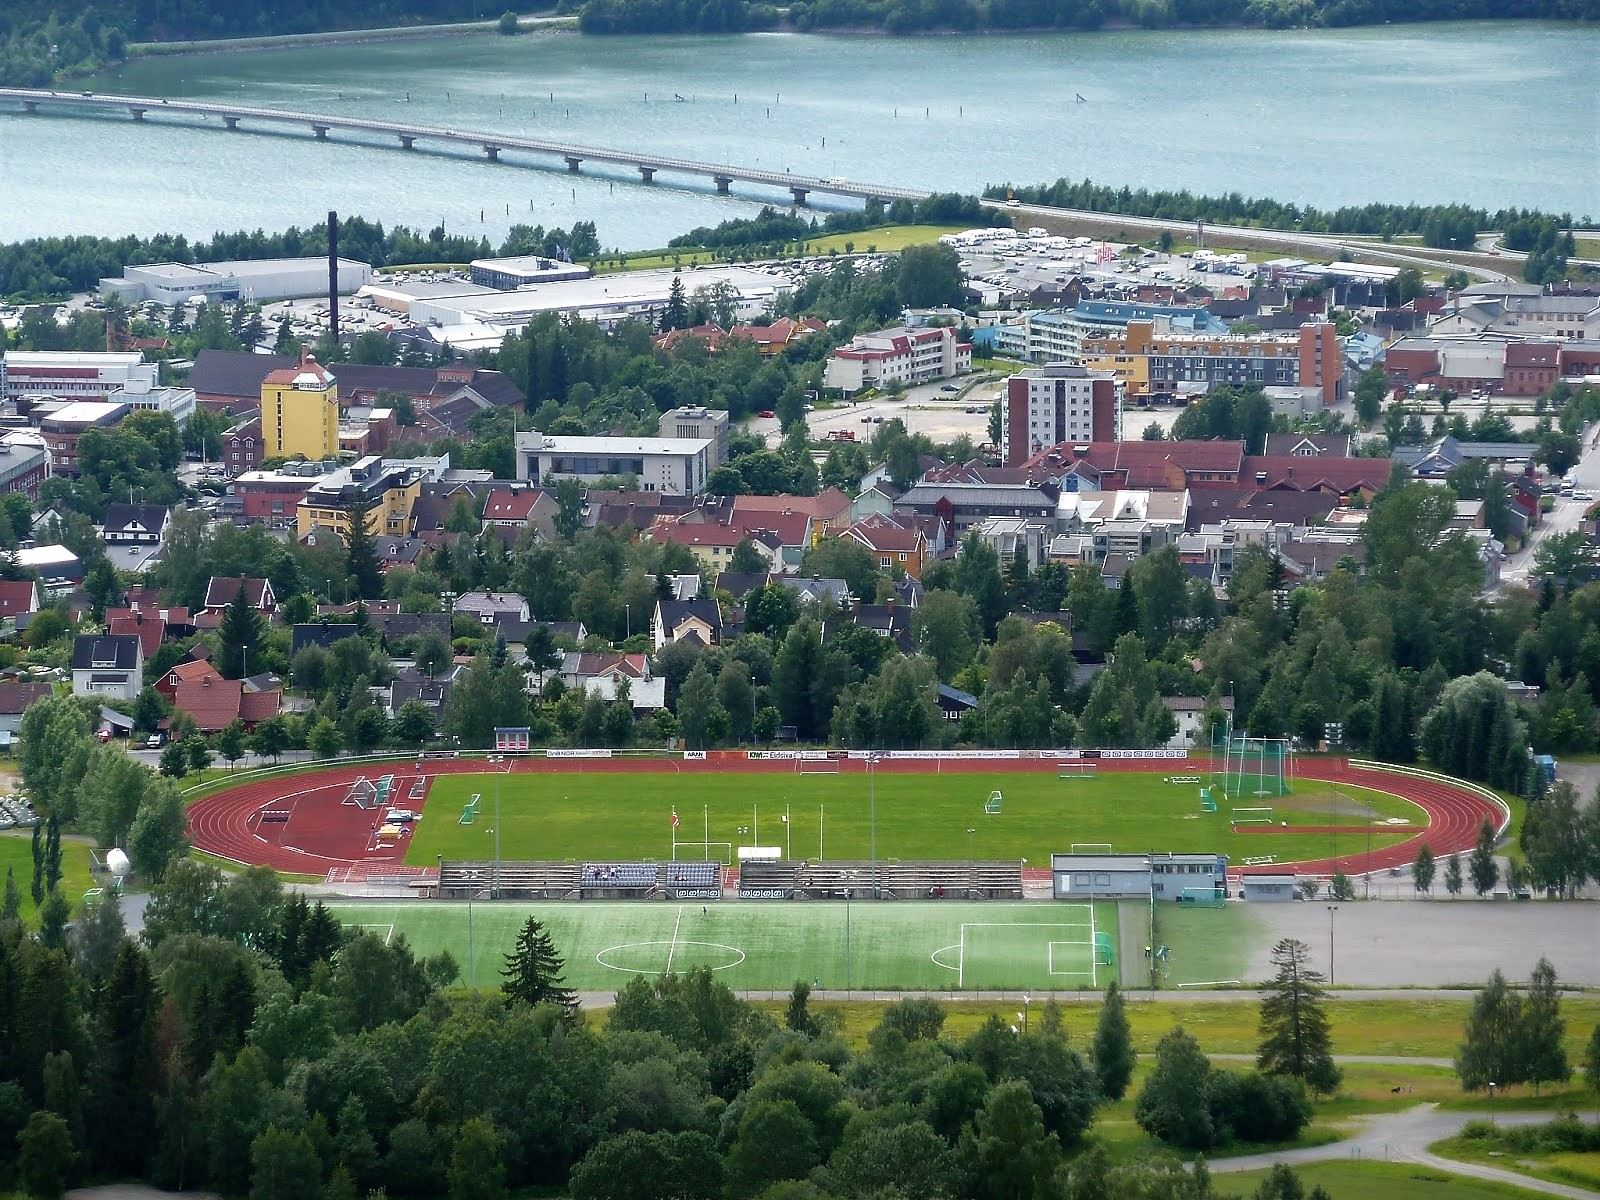 Sport athletic event in 2019 at Lillehammer